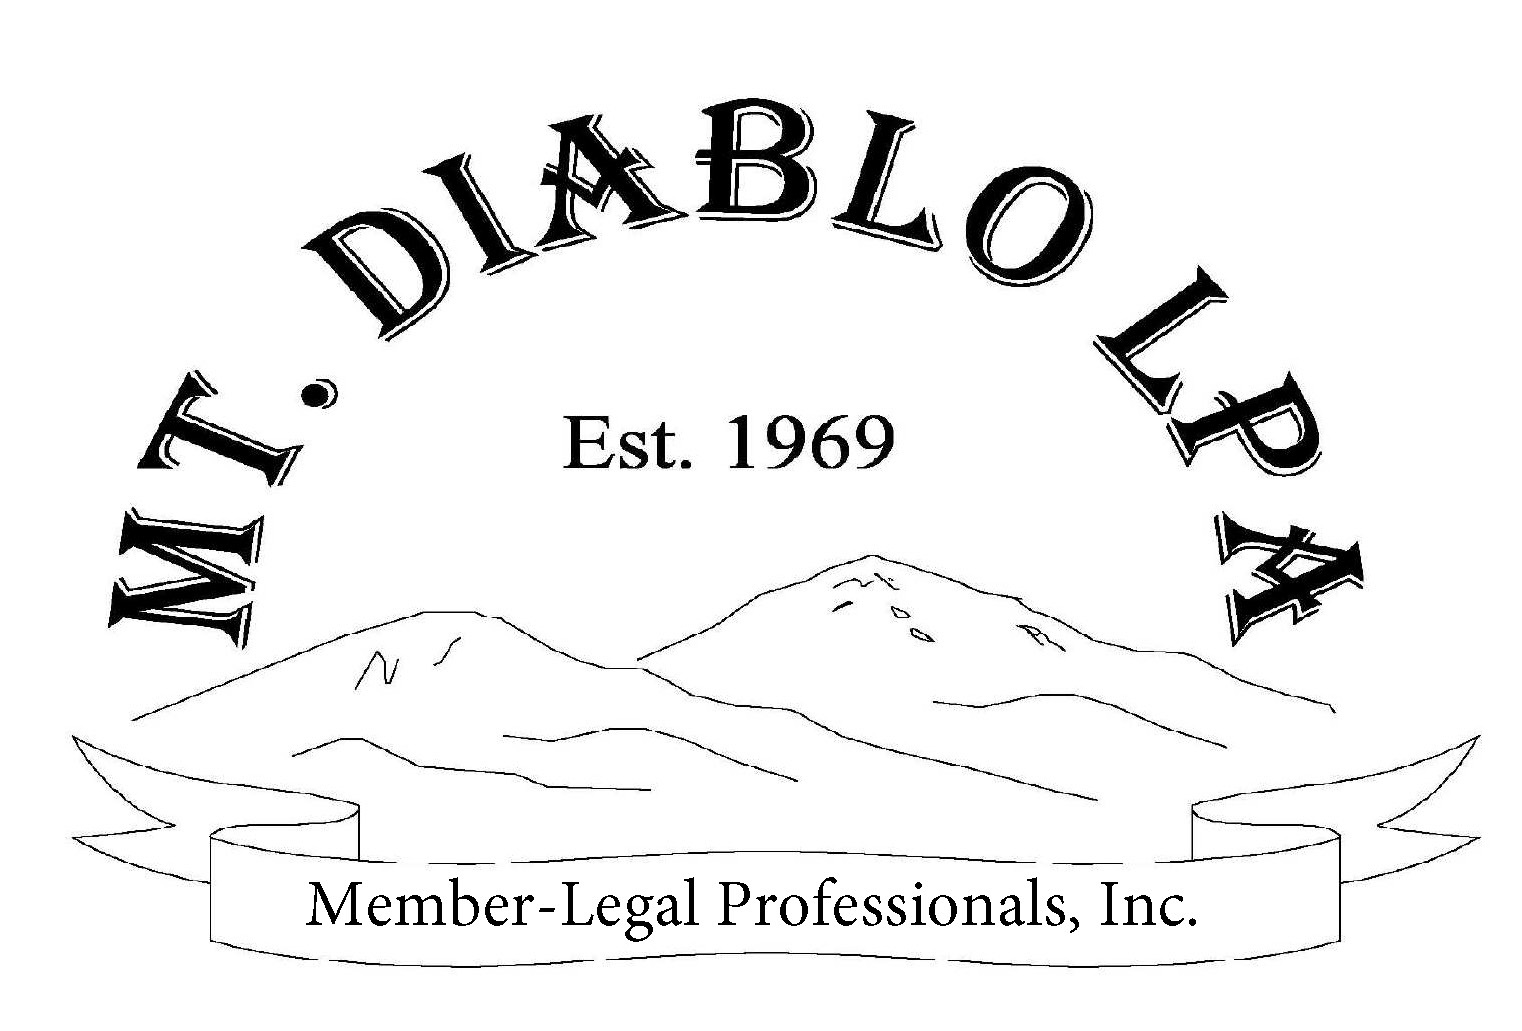 Mt. Diablo Legal Professionals Association